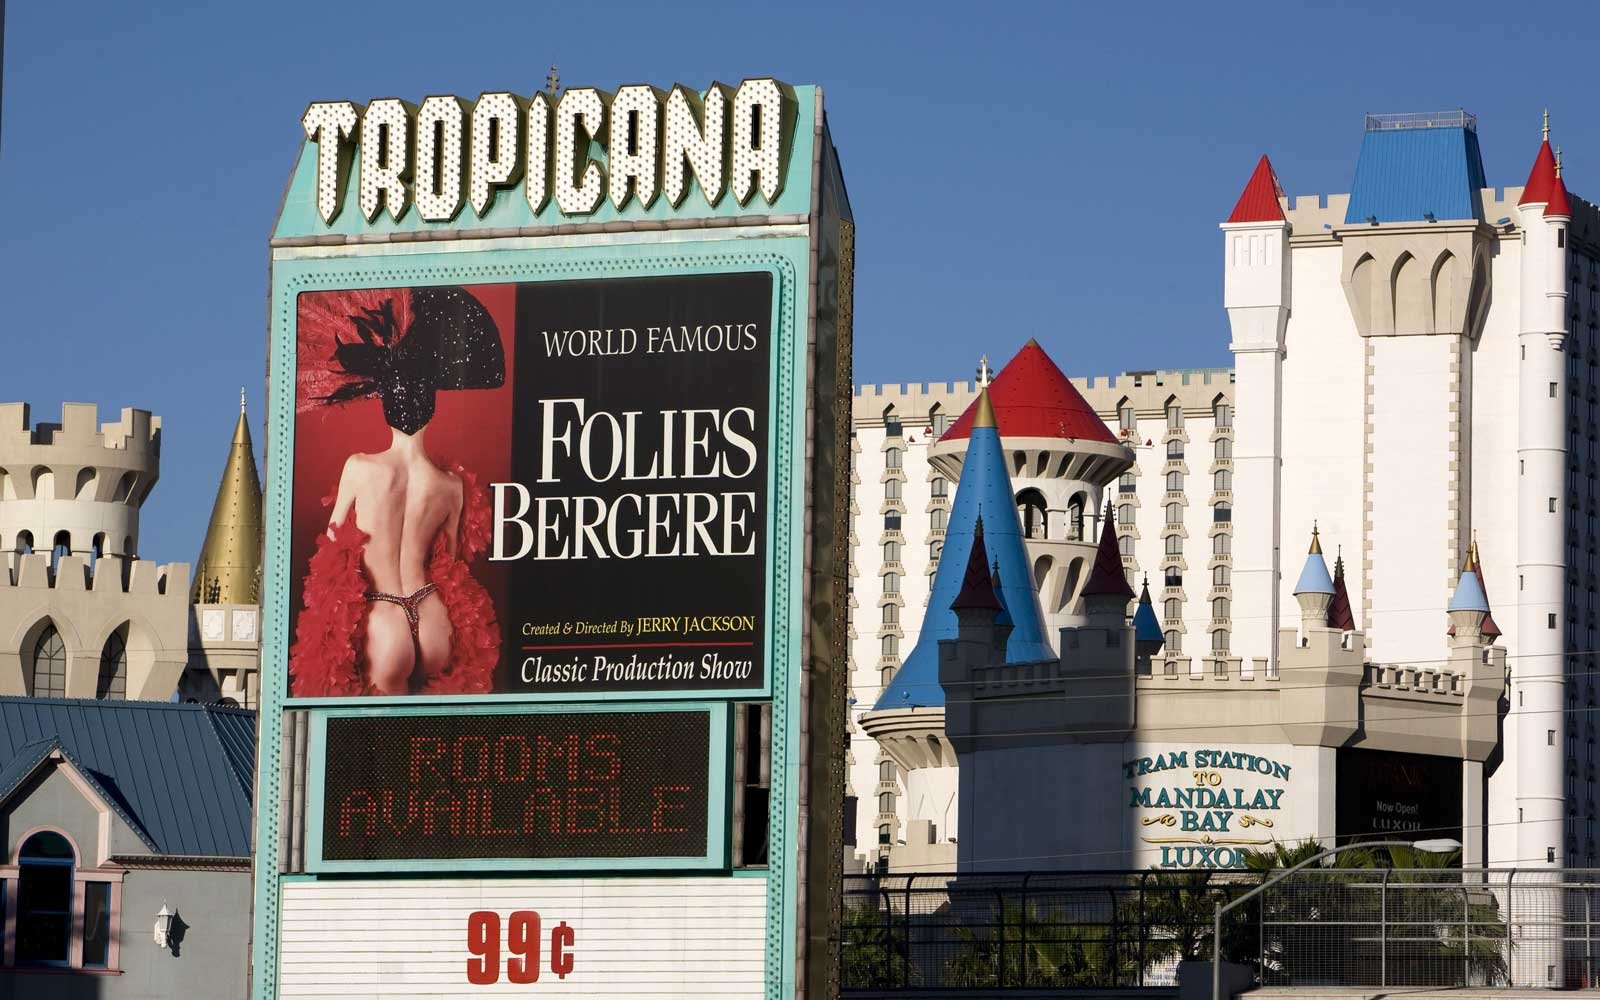 Meth lab catches fire inside Tropicana Casino hotel room